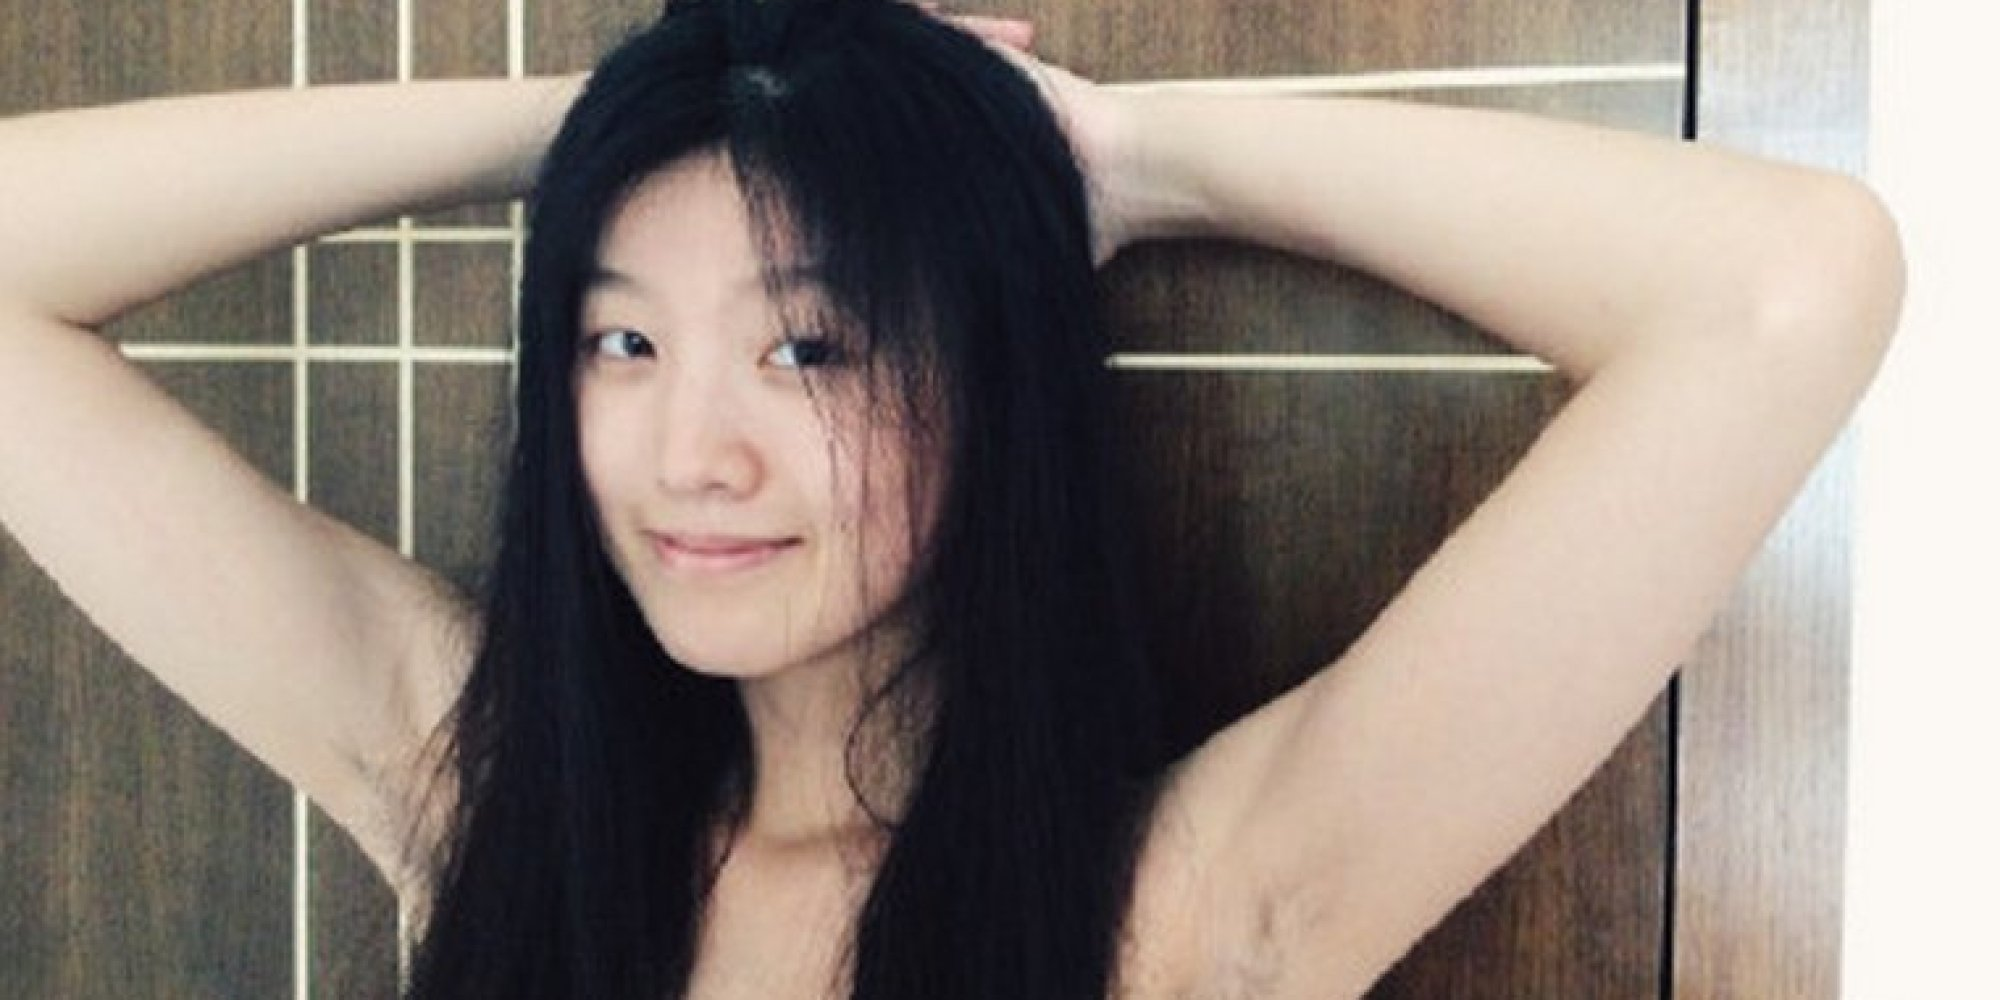 japanese hairy armpit mature uncensored young hairy asian girl If You Got It, Flaunt It: Chinese Feminists Bare Their